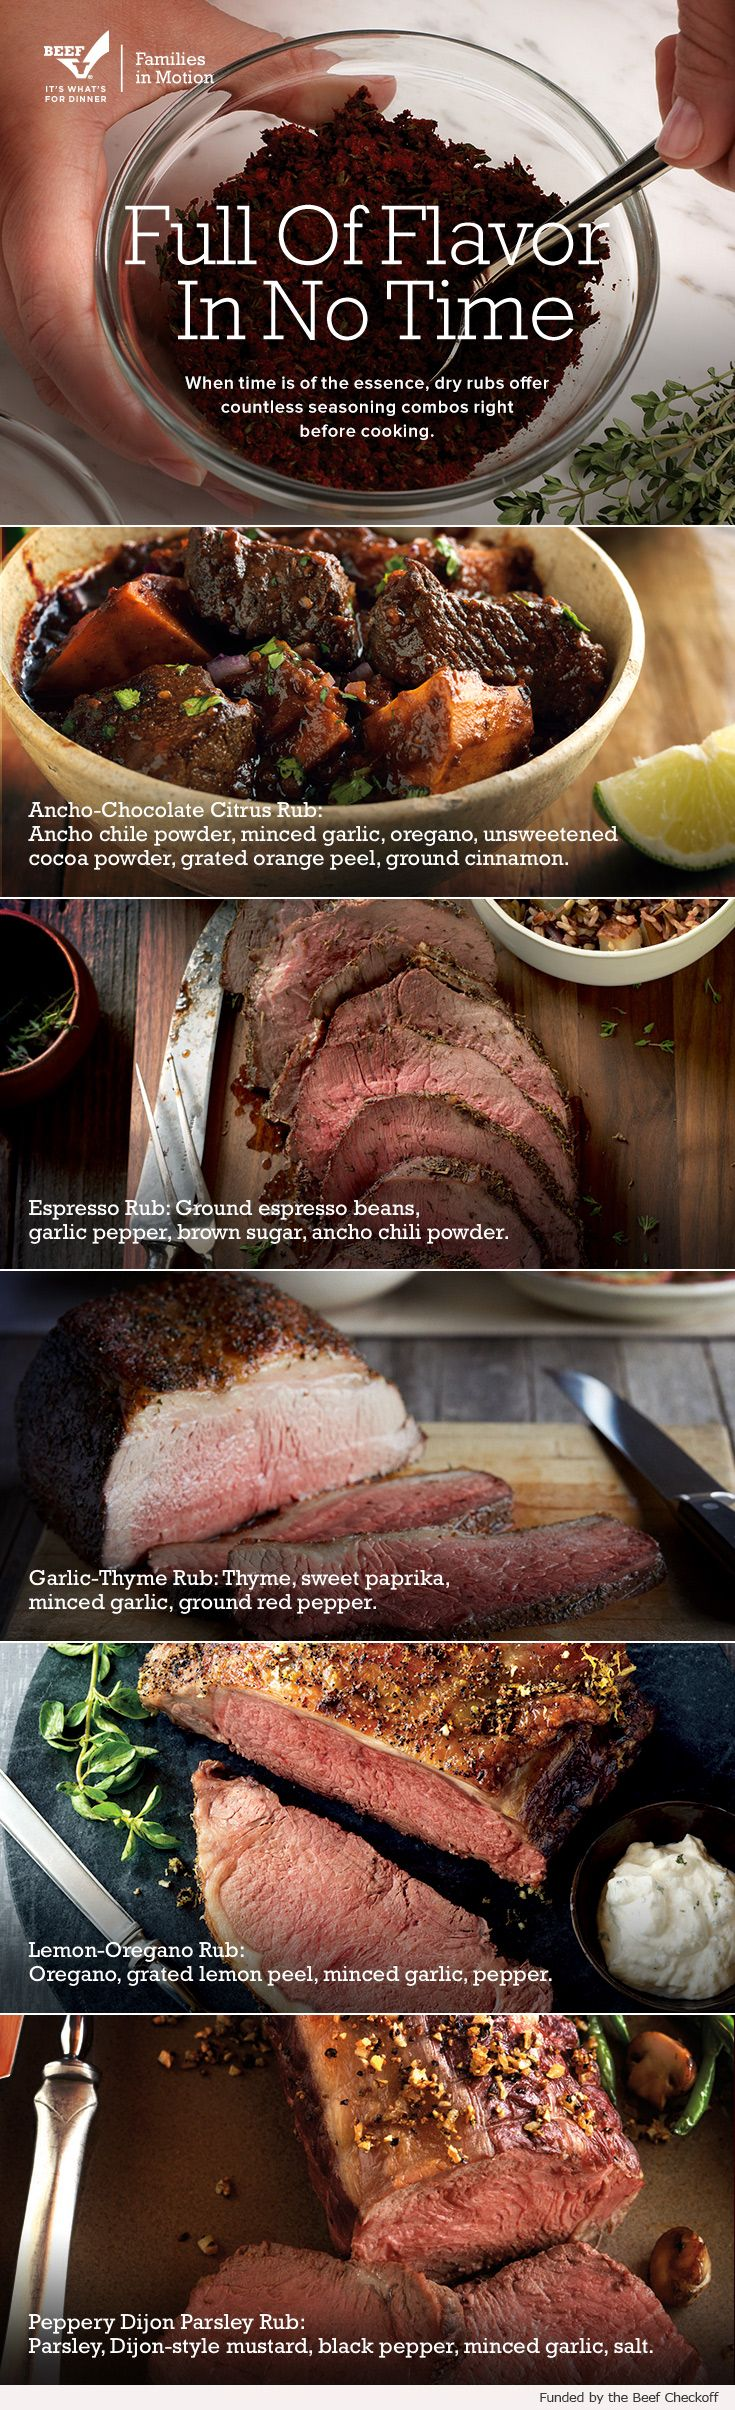 The beauty of beef is its flavorful versatility. Rub any of these seasoning combos on before cooking and you're good to go. Find recipes and more on BeefItsWhatsForDinner.com.